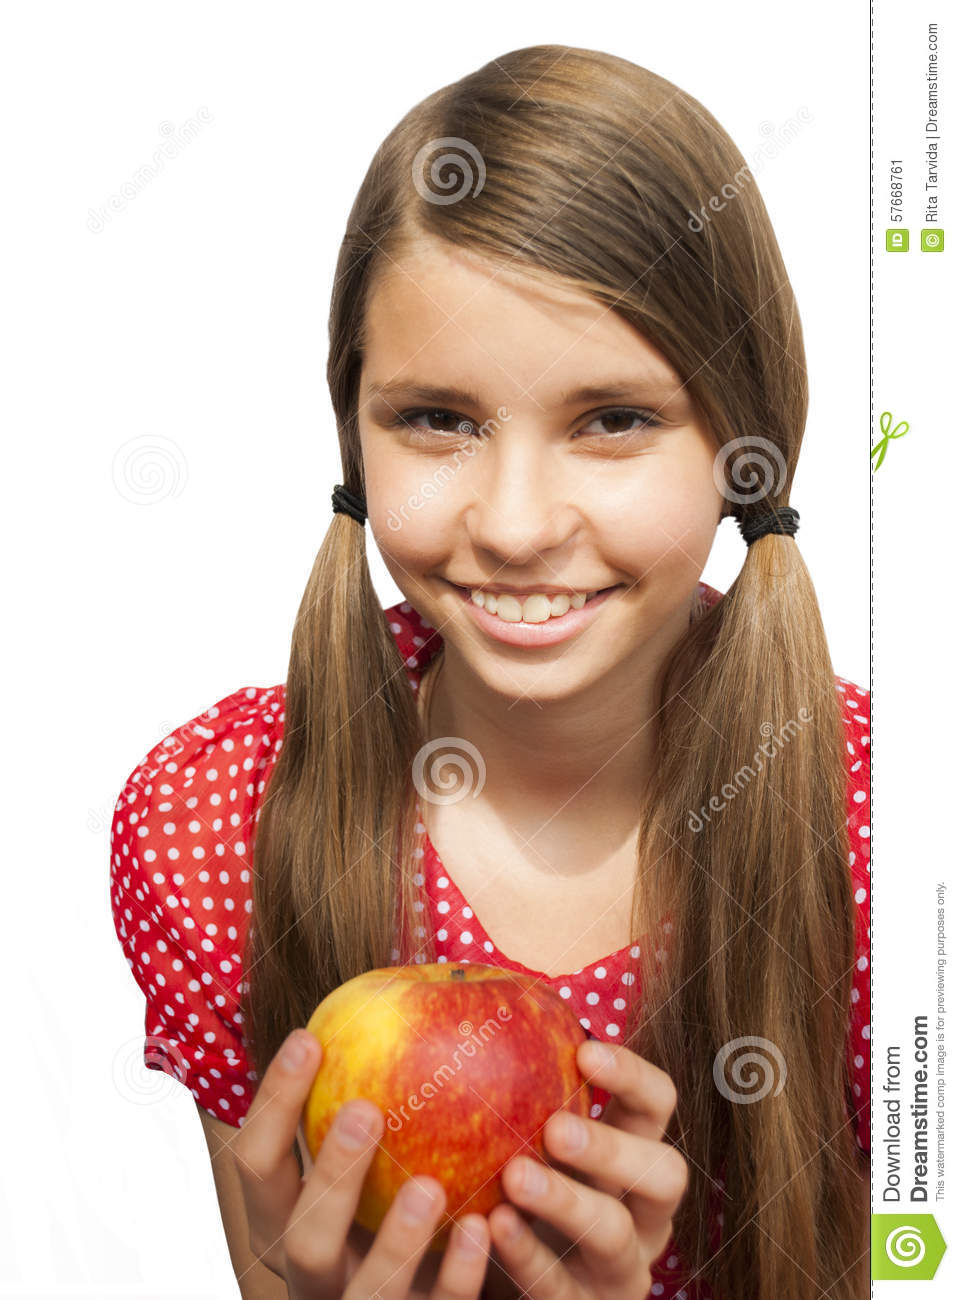 teen-girls-apple-mouth